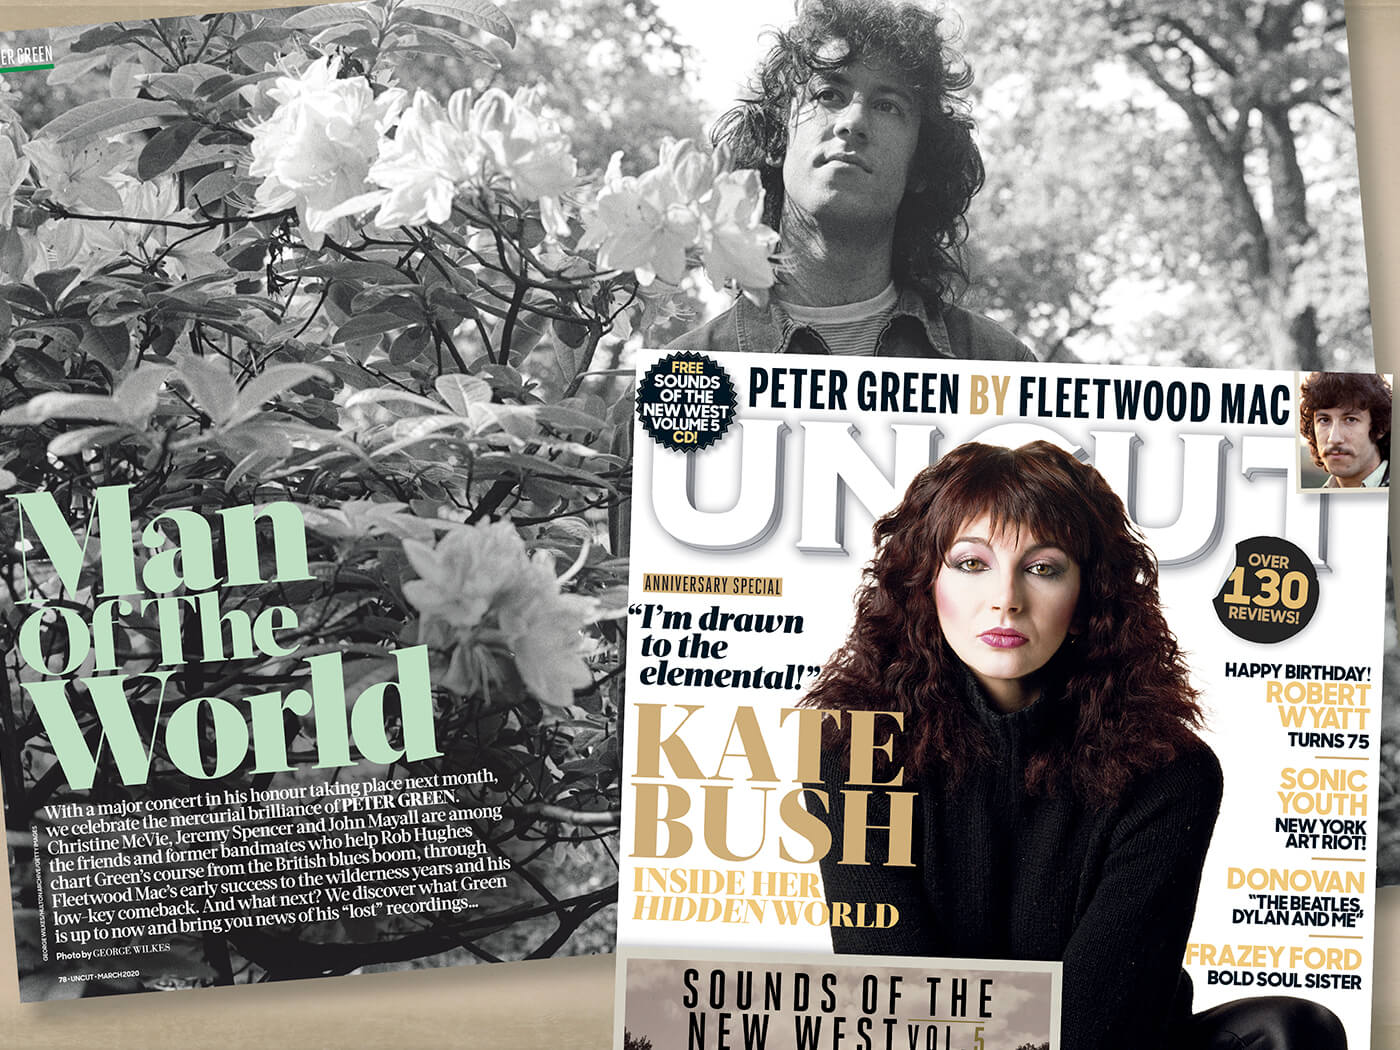 """Fleetwood Mac's Christine McVie on Peter Green: """"Every guitar player adores him"""" - UNCUT"""